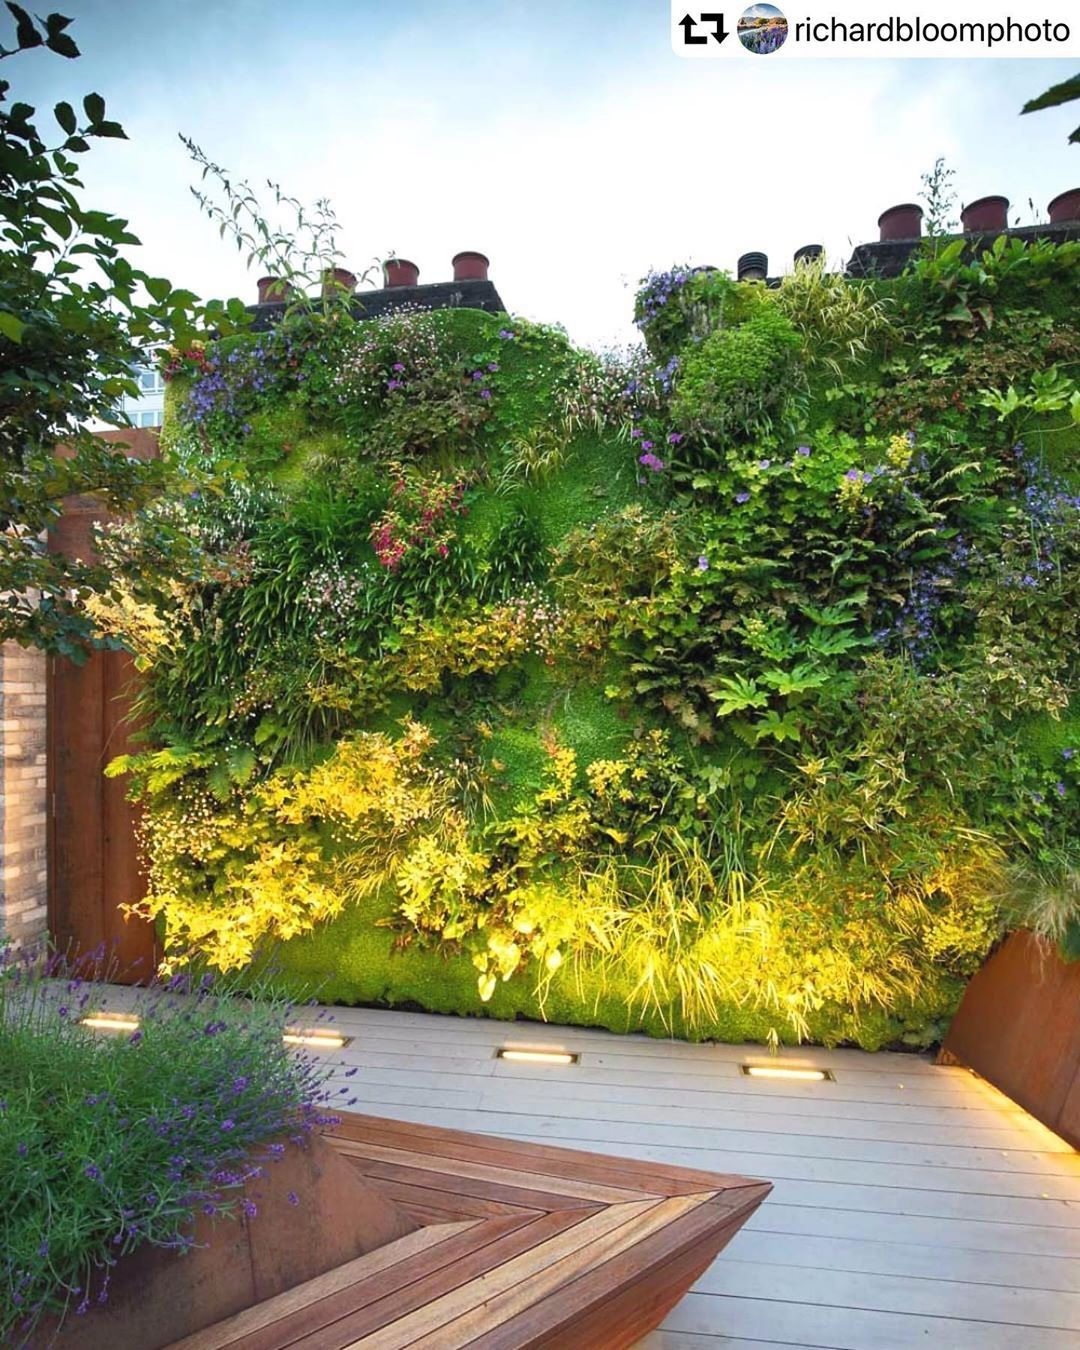 Shoreditch Gardens: I Photographed This Incredible Roof Garden In Shoreditch A